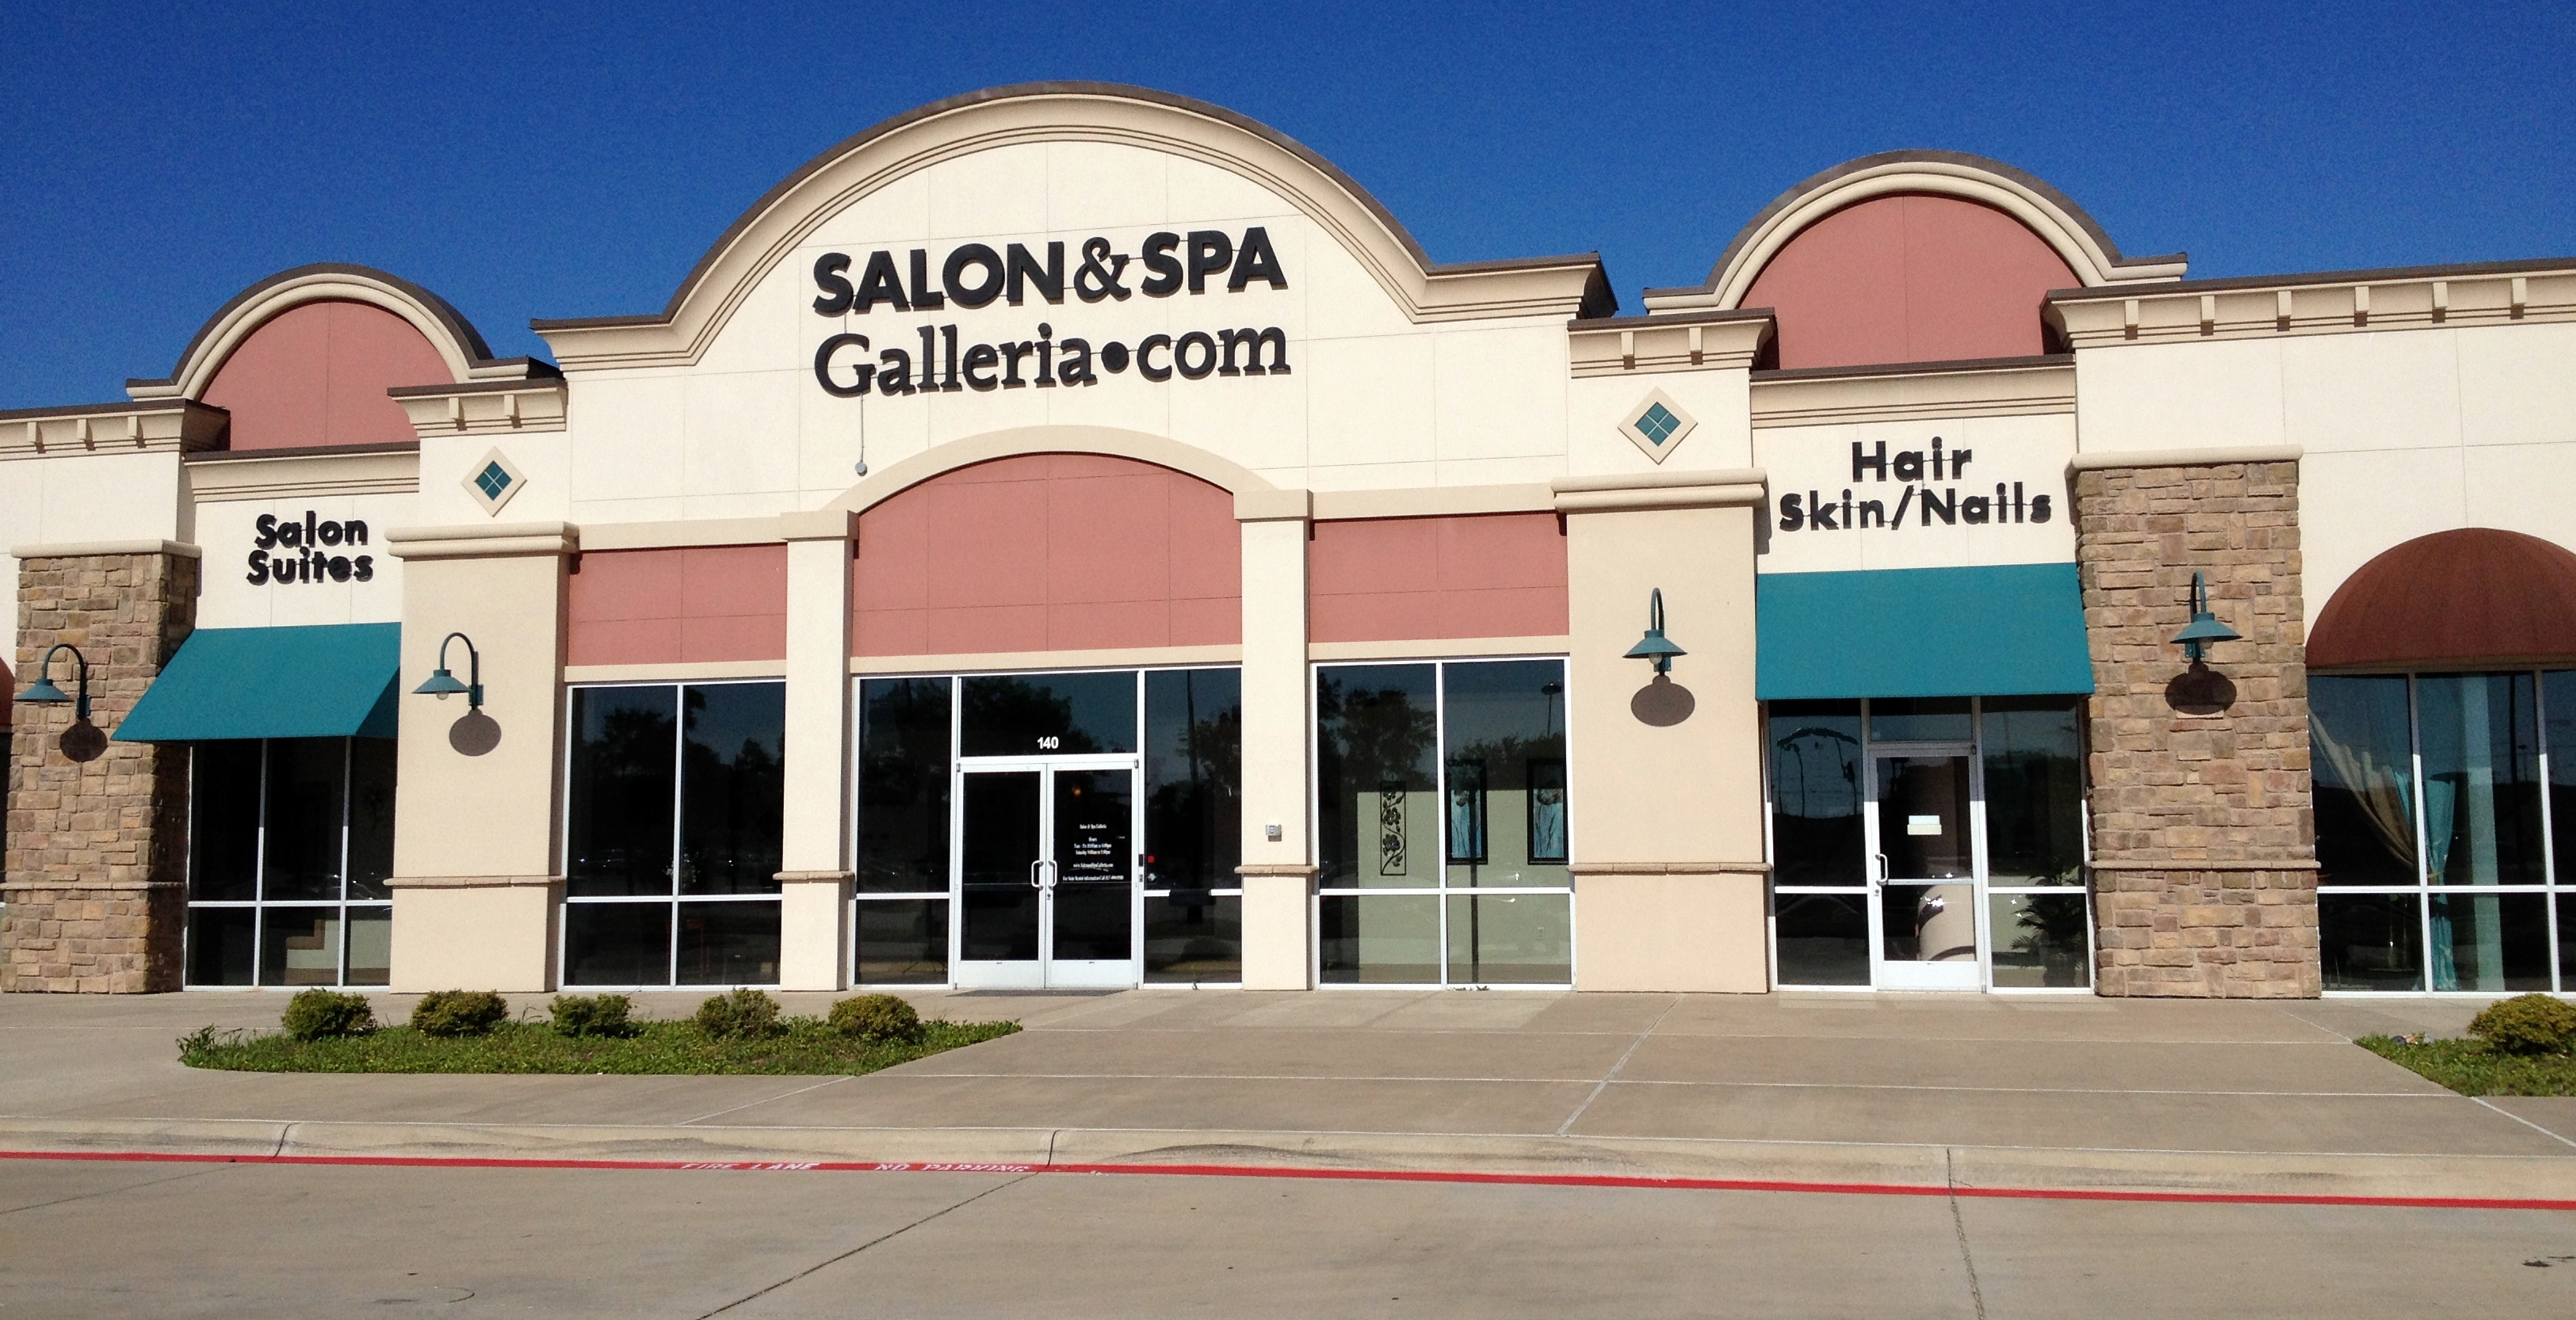 Salons in Arlington Texas from Salon and Spa Galleria